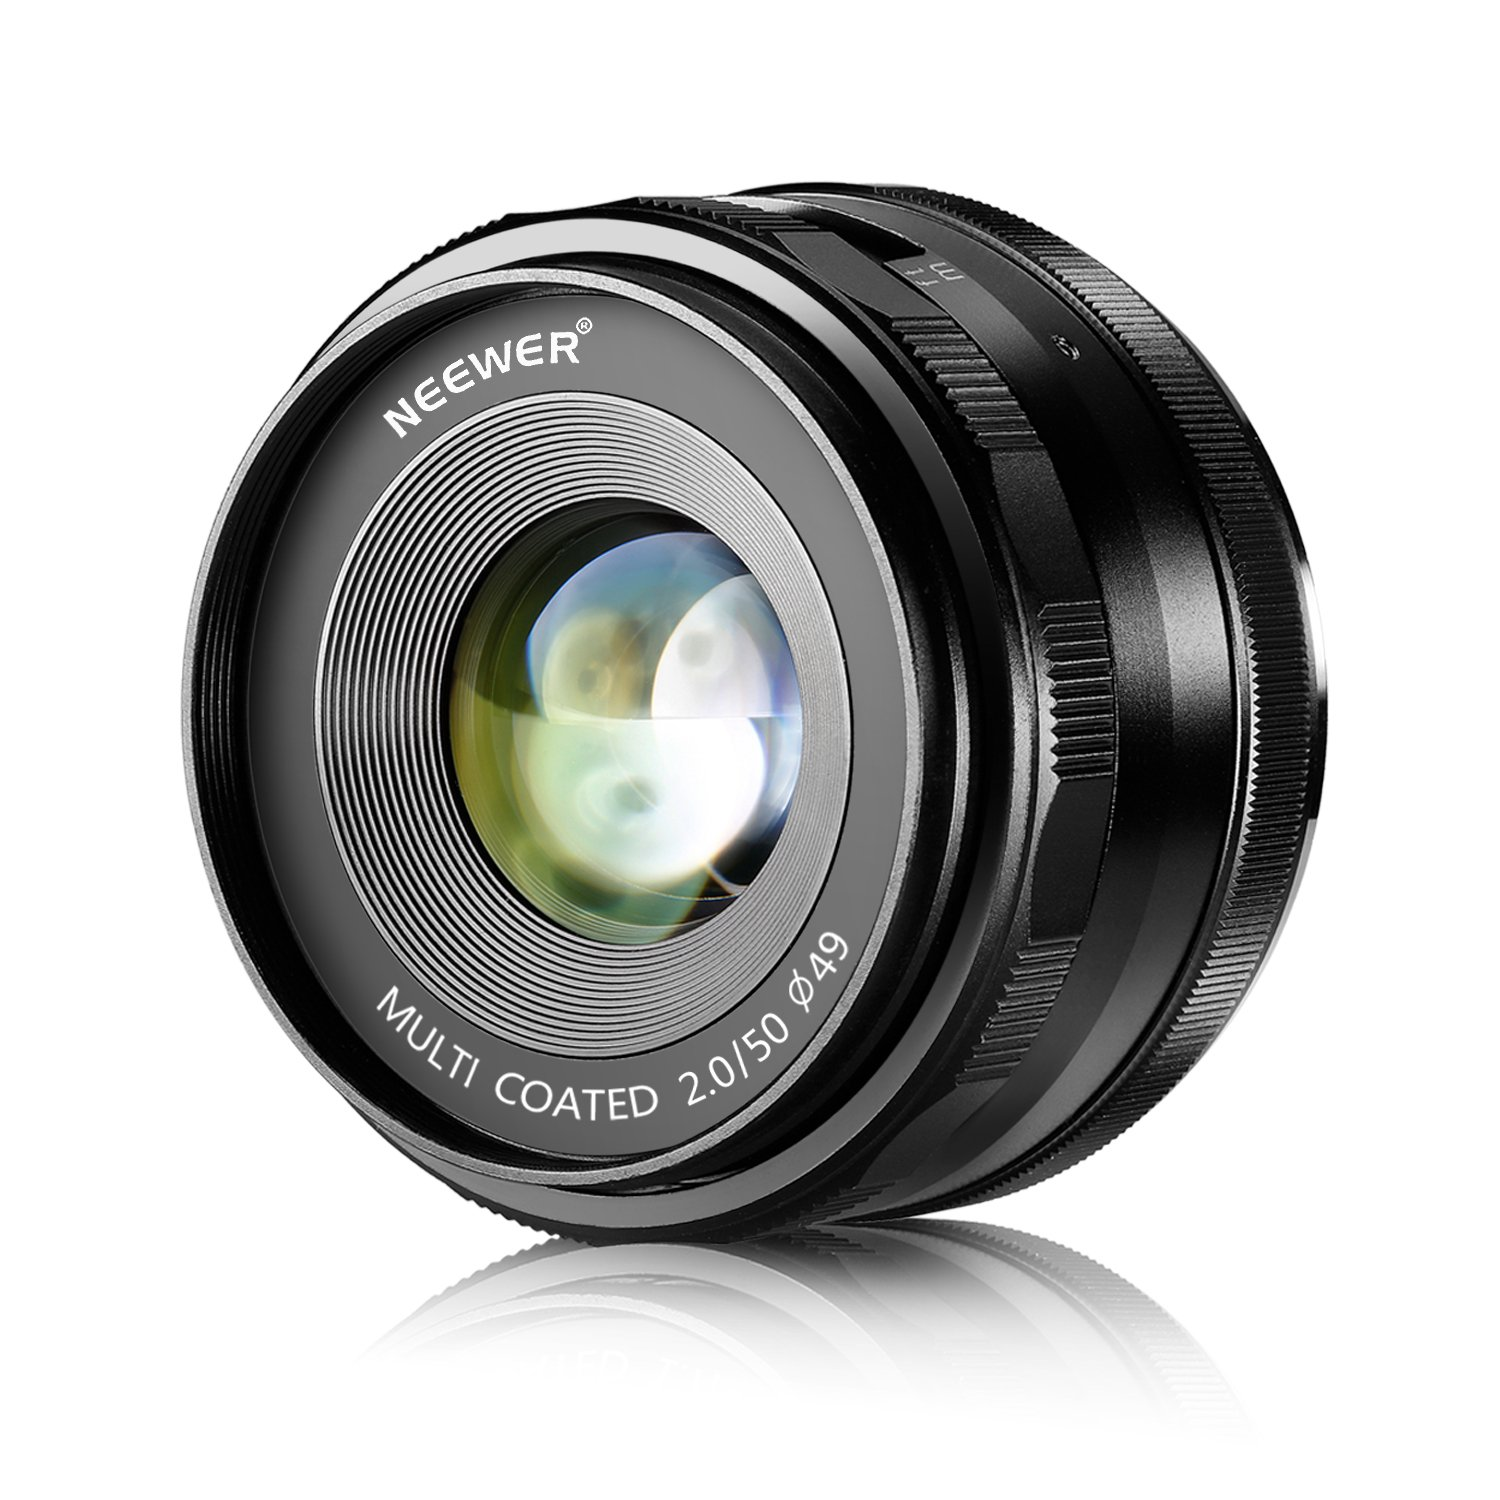 Neewer 50mm f/2.0 Manual Focus Prime Fixed Lens for SONY E-Mount Digital Cameras, Such as NEX3, 3N, 5, 5T, 5R, 6, 7, A5000, A5100, A6000, A6100 and A6300 (NW-E-50-2.0) by Neewer